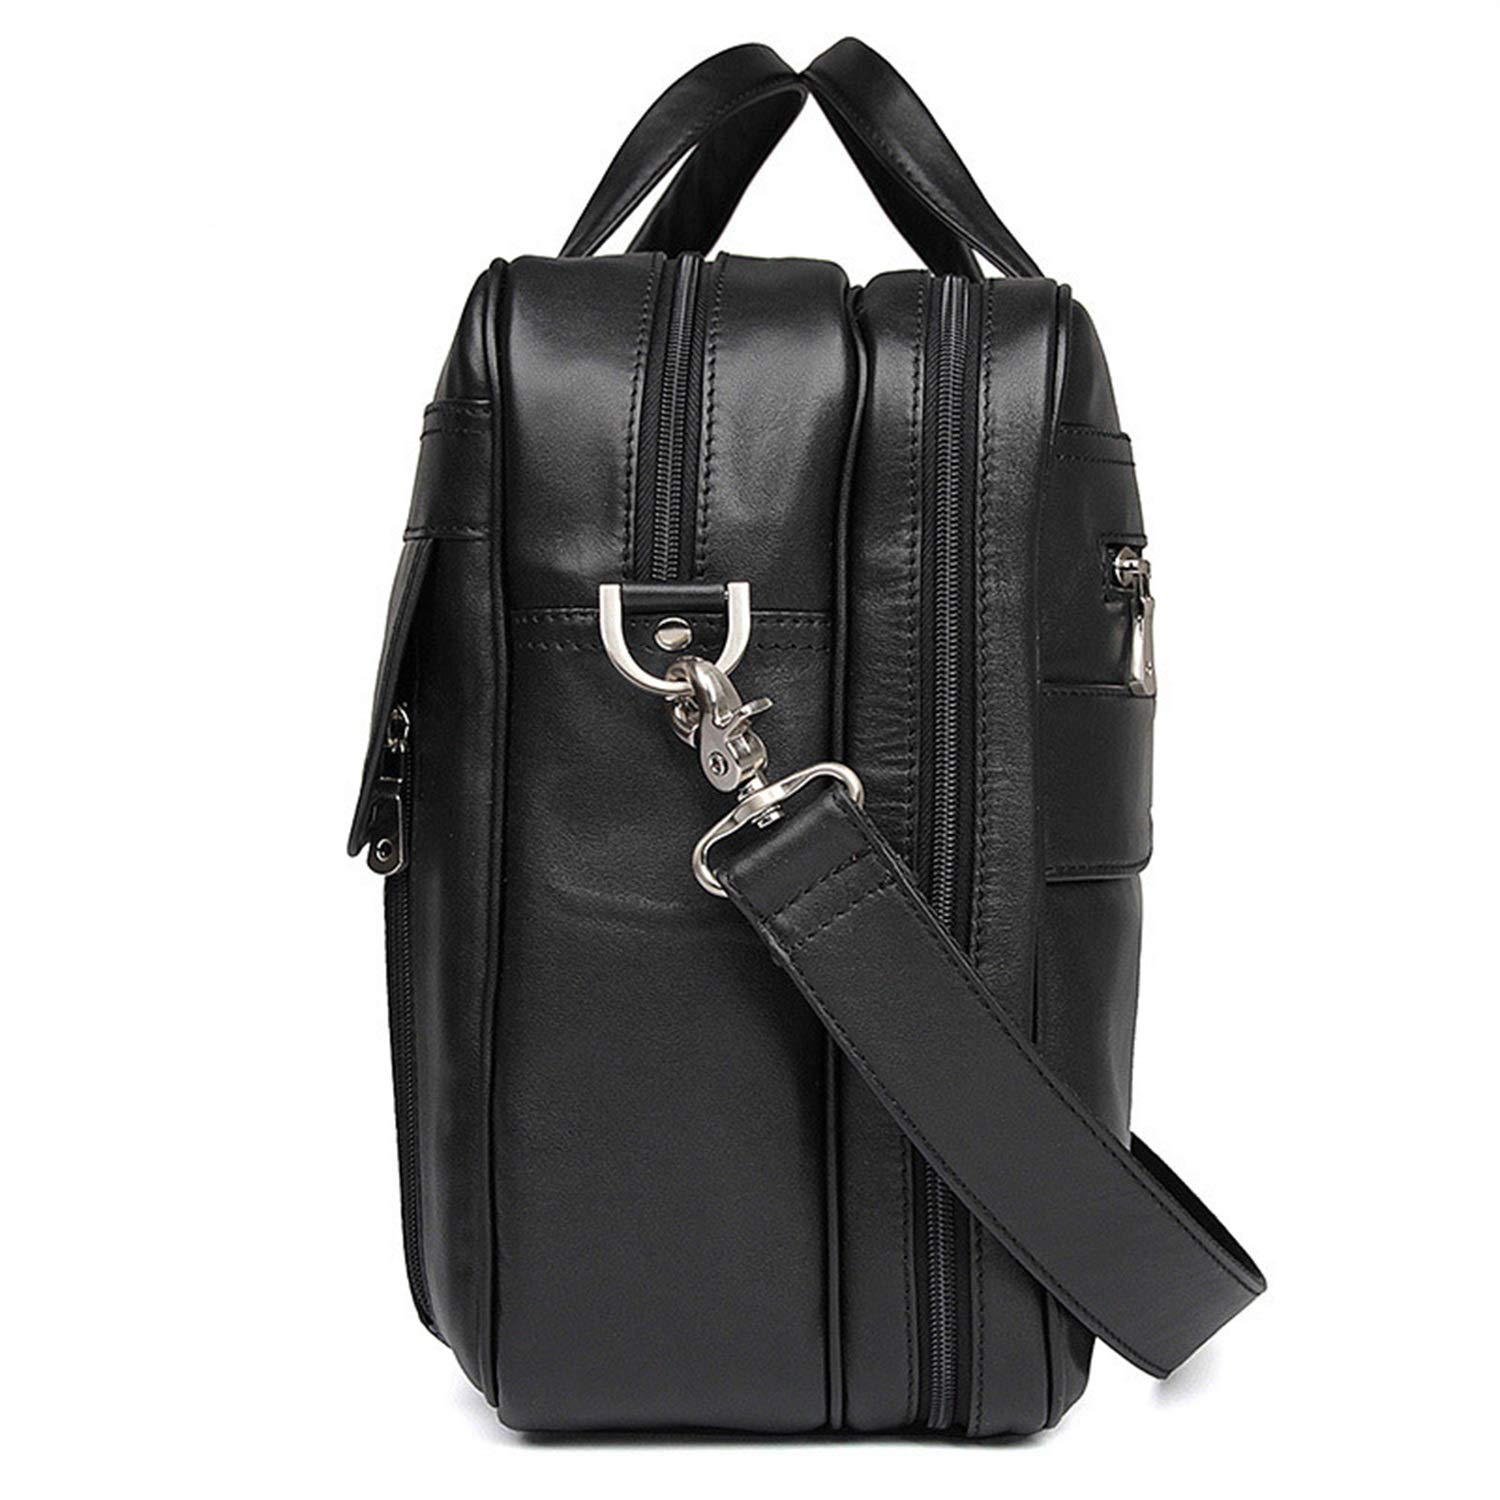 Color : Black, Size : L MUMUWU Mens Shoulder Bag Leather Mens Bag Business Tote Leather Napa Leather Large Briefcase Executive Shoulder Bag Men